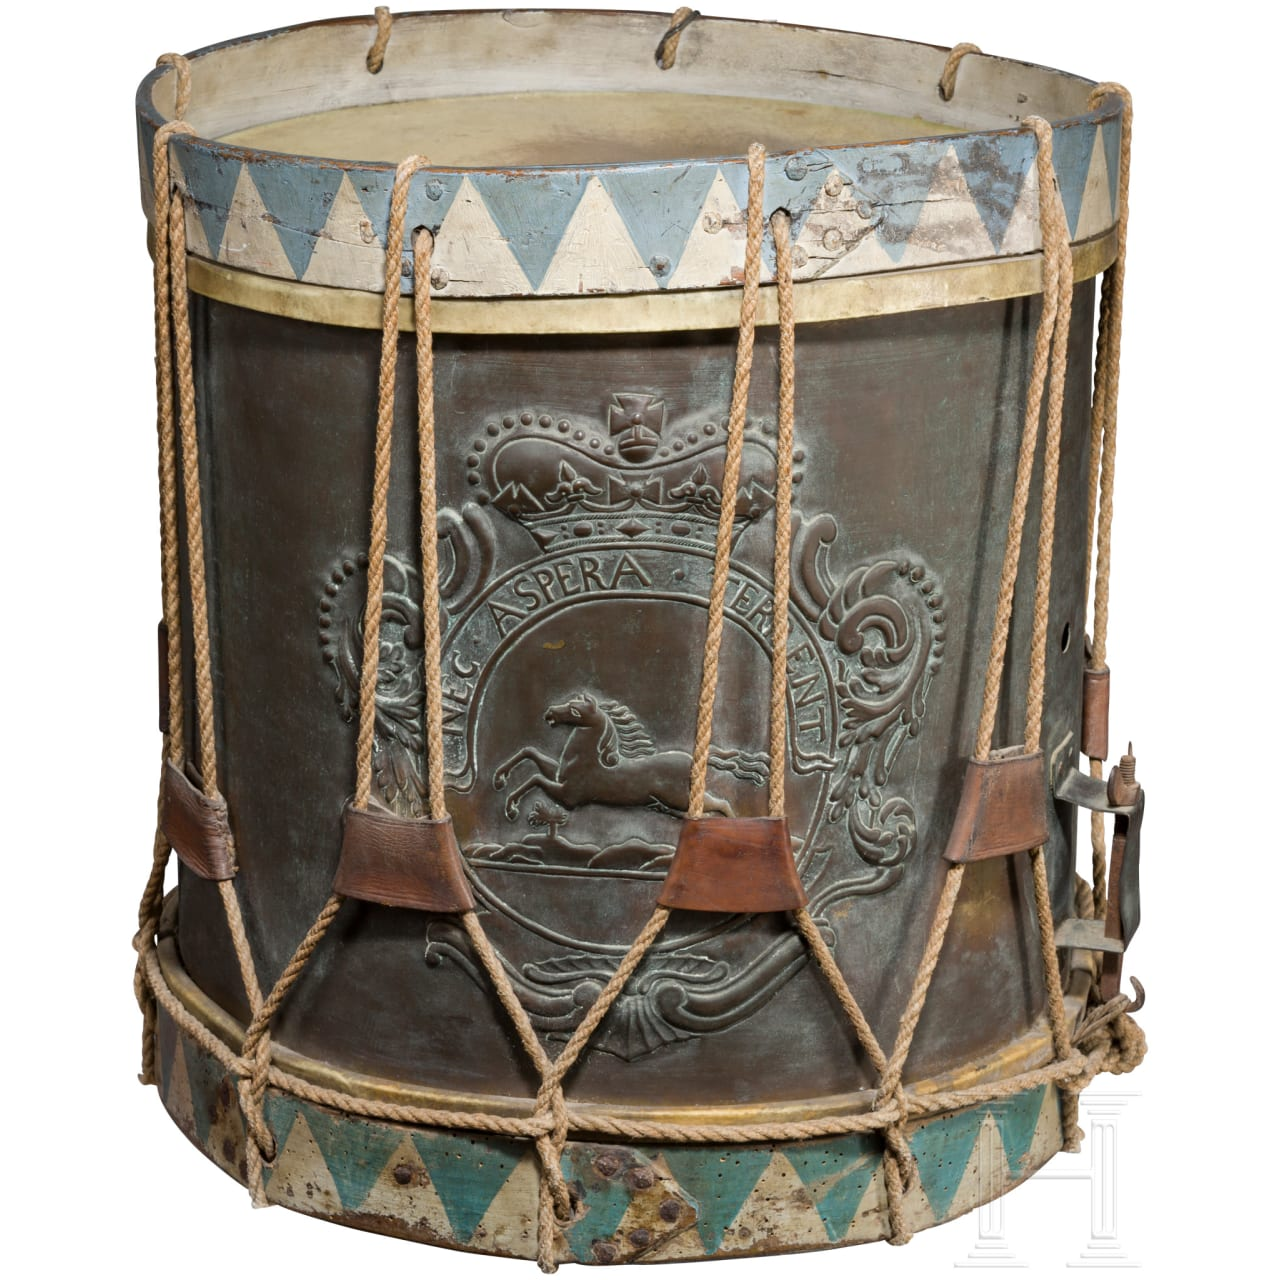 A marching drum for the infantry of the Electorate of Brunswick-Lüneburg, 18th century